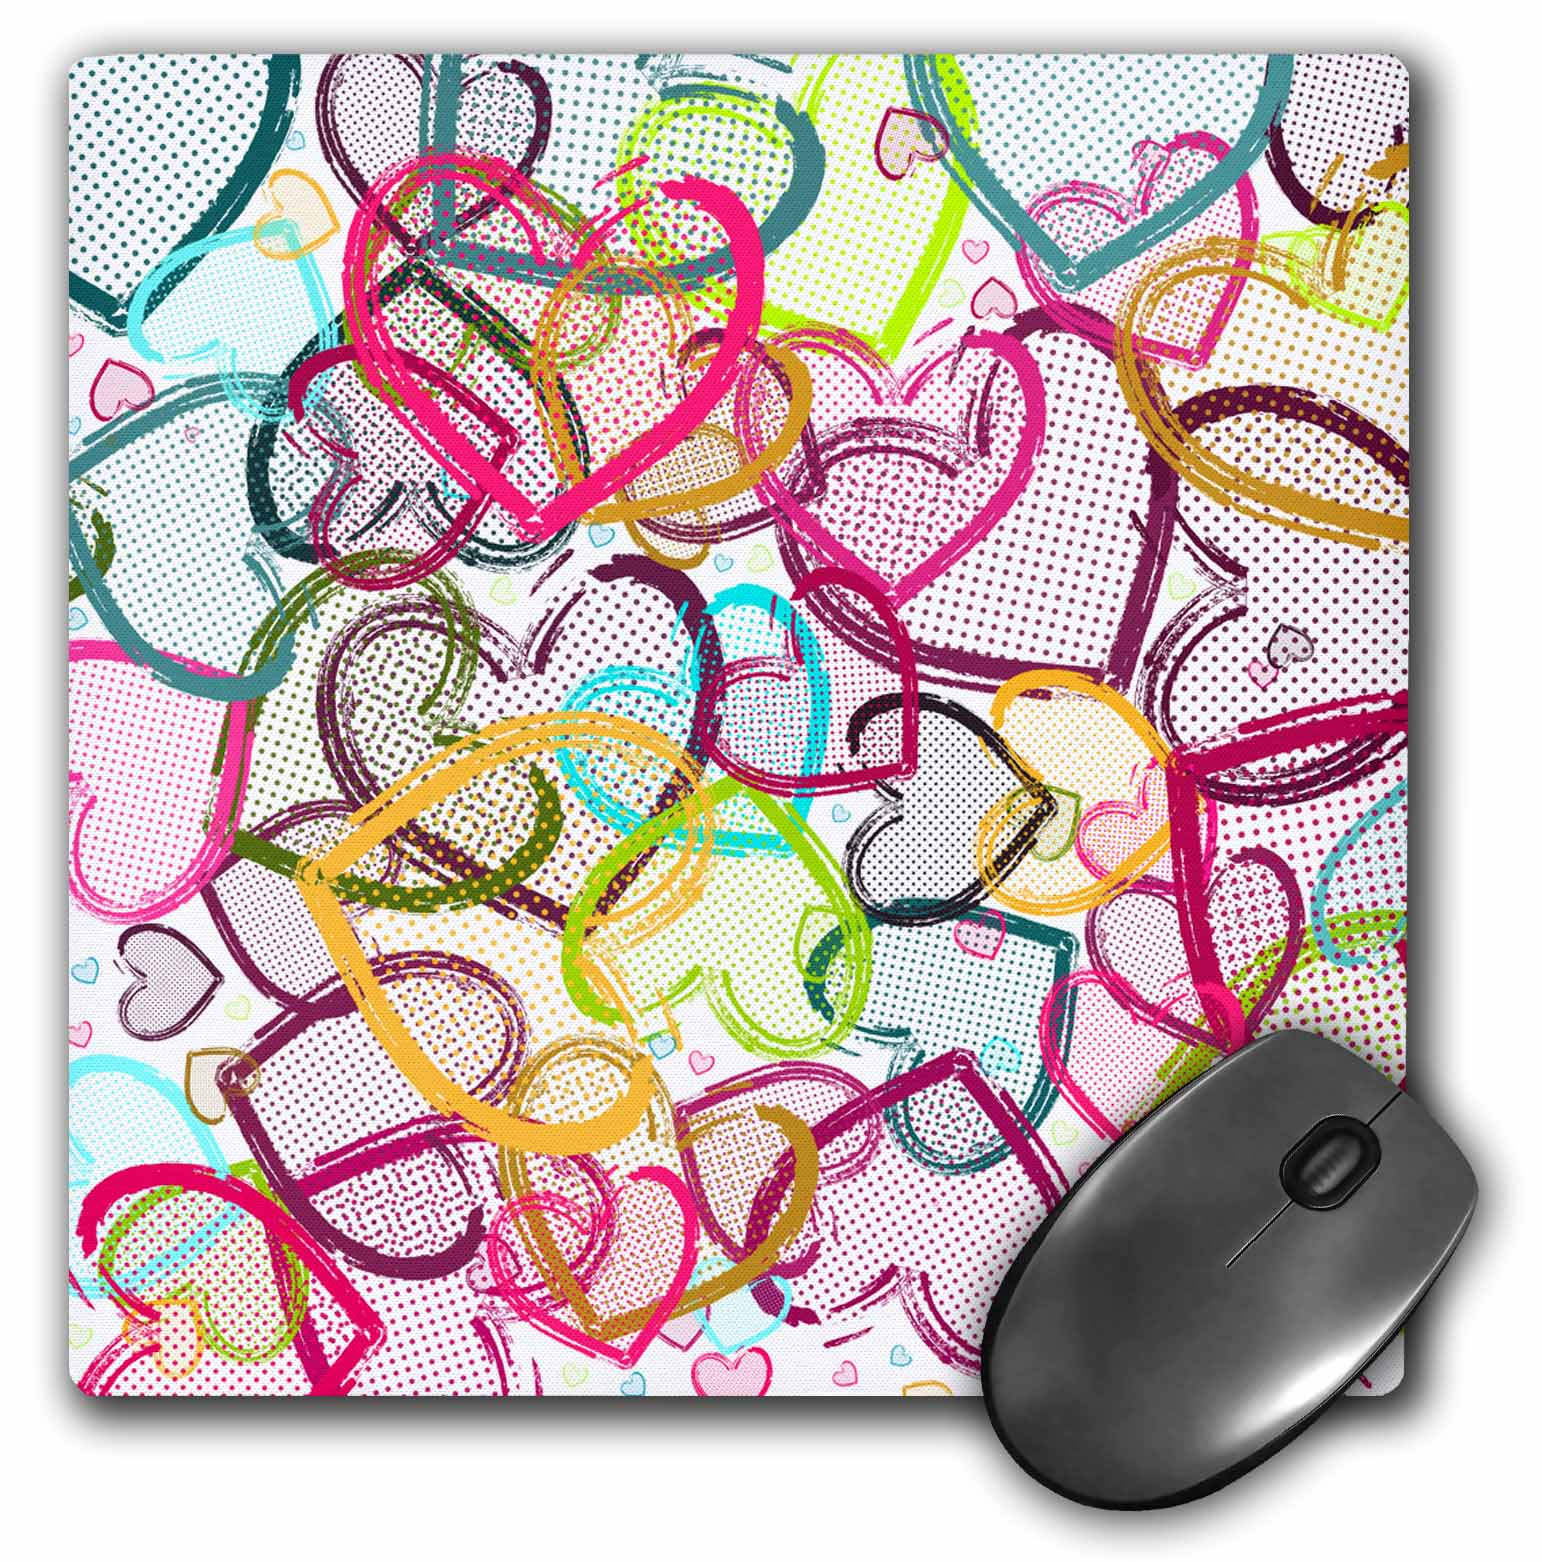 3dRose Candy Hearts, Mouse Pad, 8 by 8 inches mp_32522_1